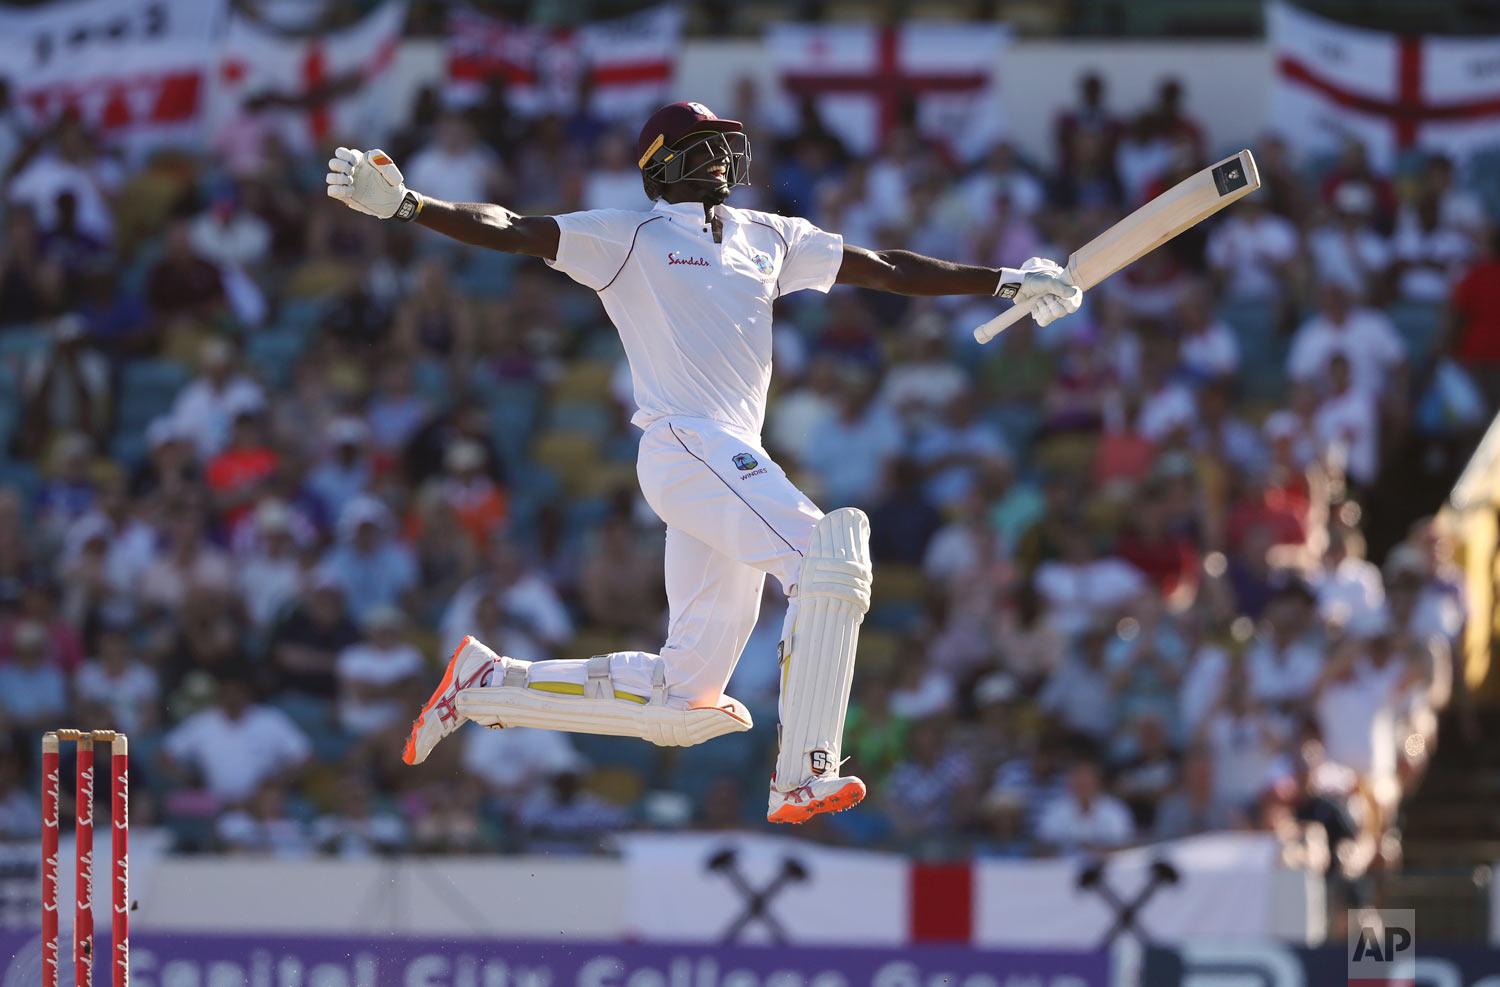 West Indies' captain Jason Holder celebrates his double century against England on the fourth day of their first cricket Test match in Bridgetown, Barbados, Jan. 25, 2019. (AP Photo/Ricardo Mazalan)